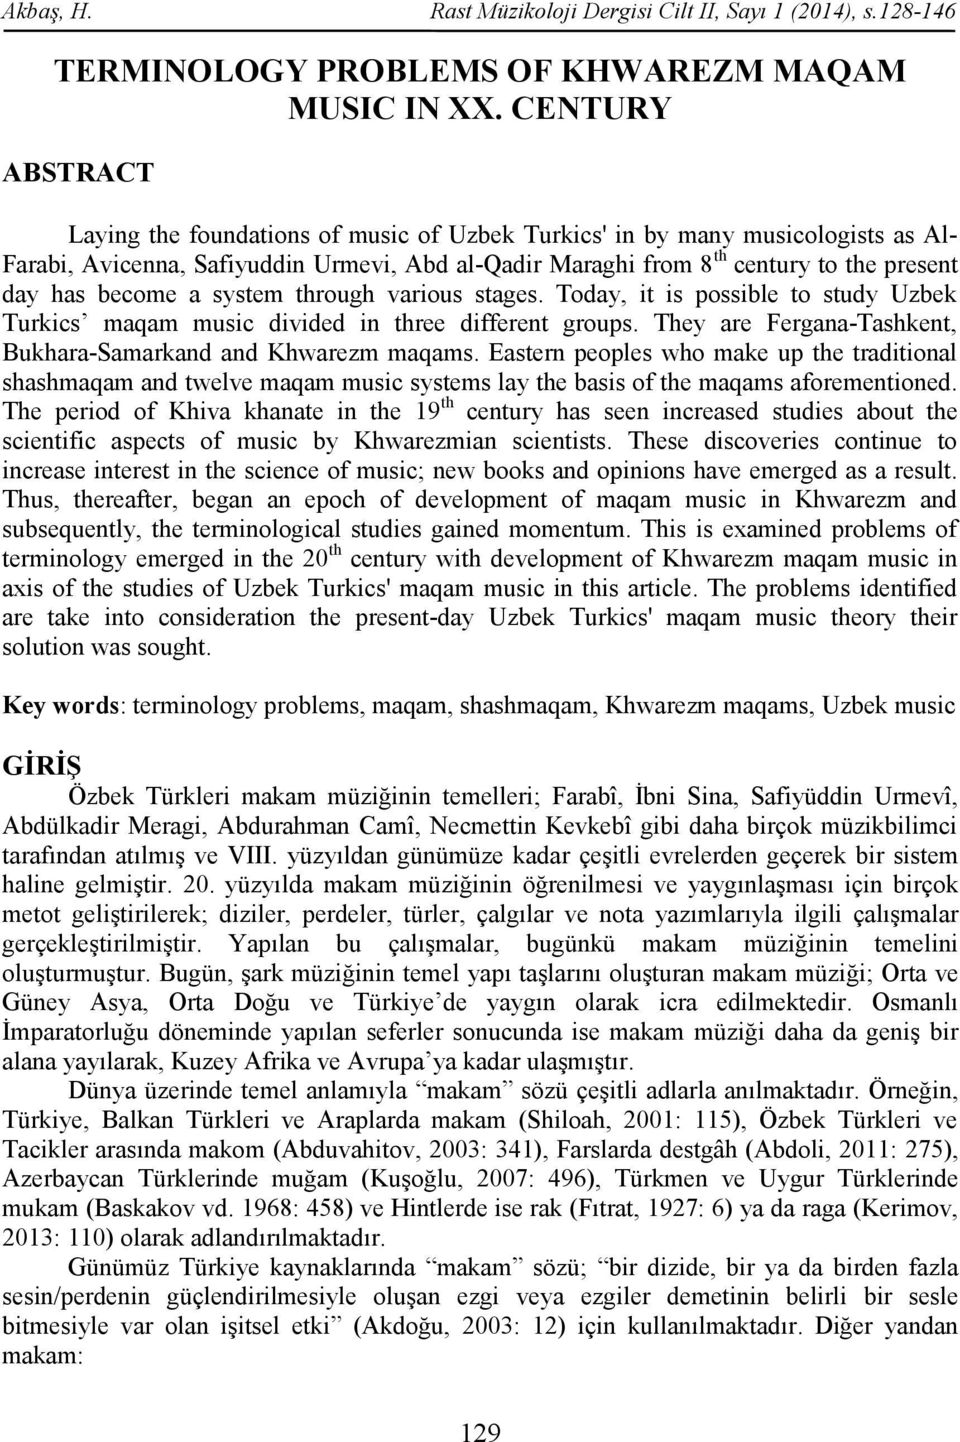 become a system through various stages. Today, it is possible to study Uzbek Turkics maqam music divided in three different groups. They are Fergana-Tashkent, Bukhara-Samarkand and Khwarezm maqams.